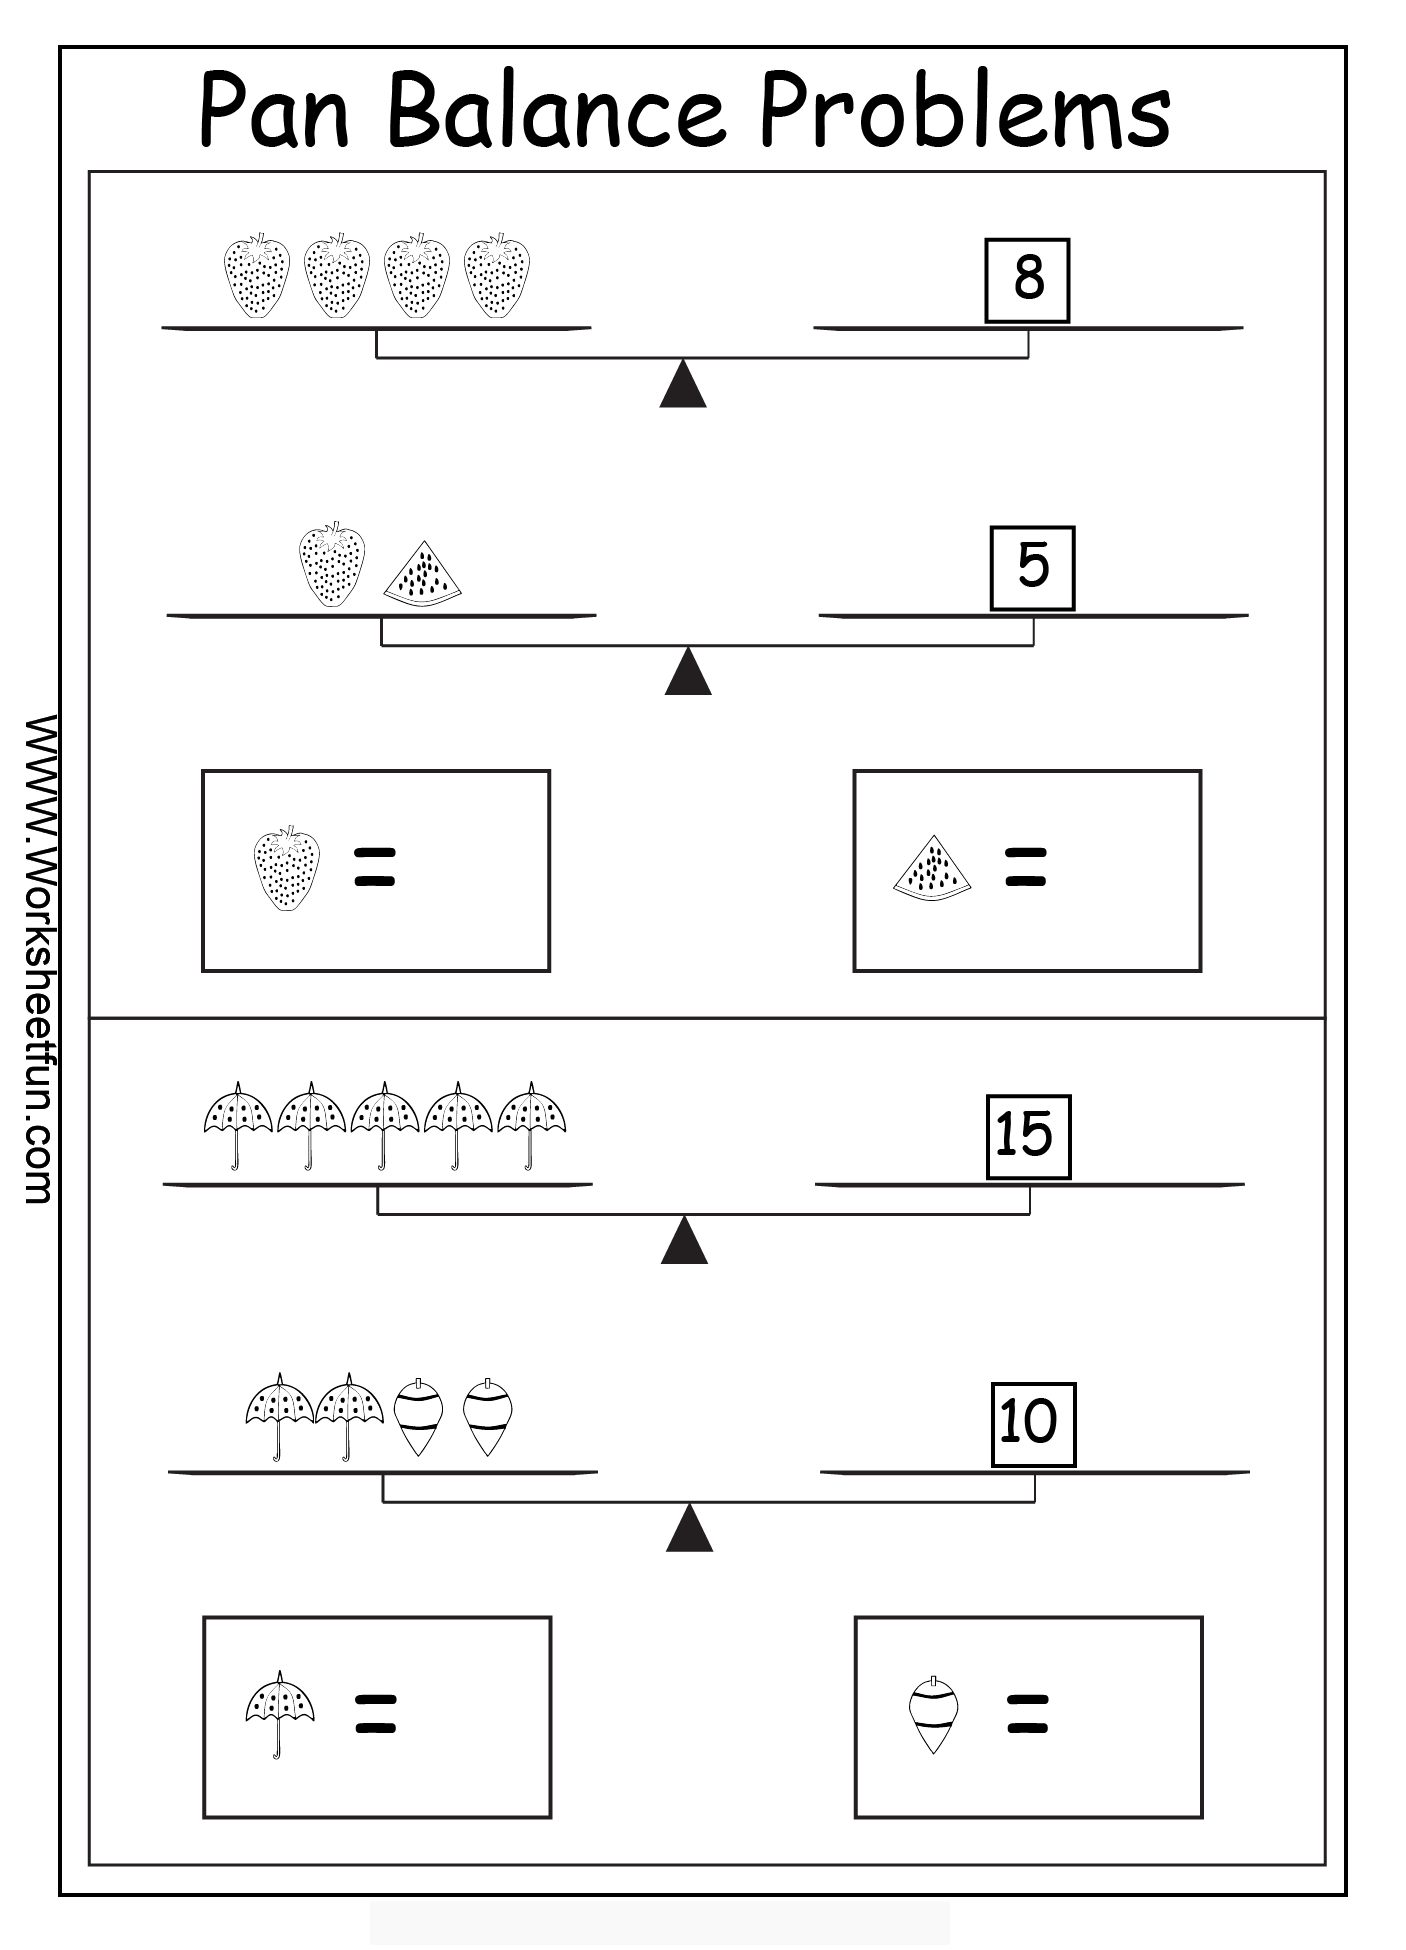 pan balance problems - 15 worksheets | printable worksheets